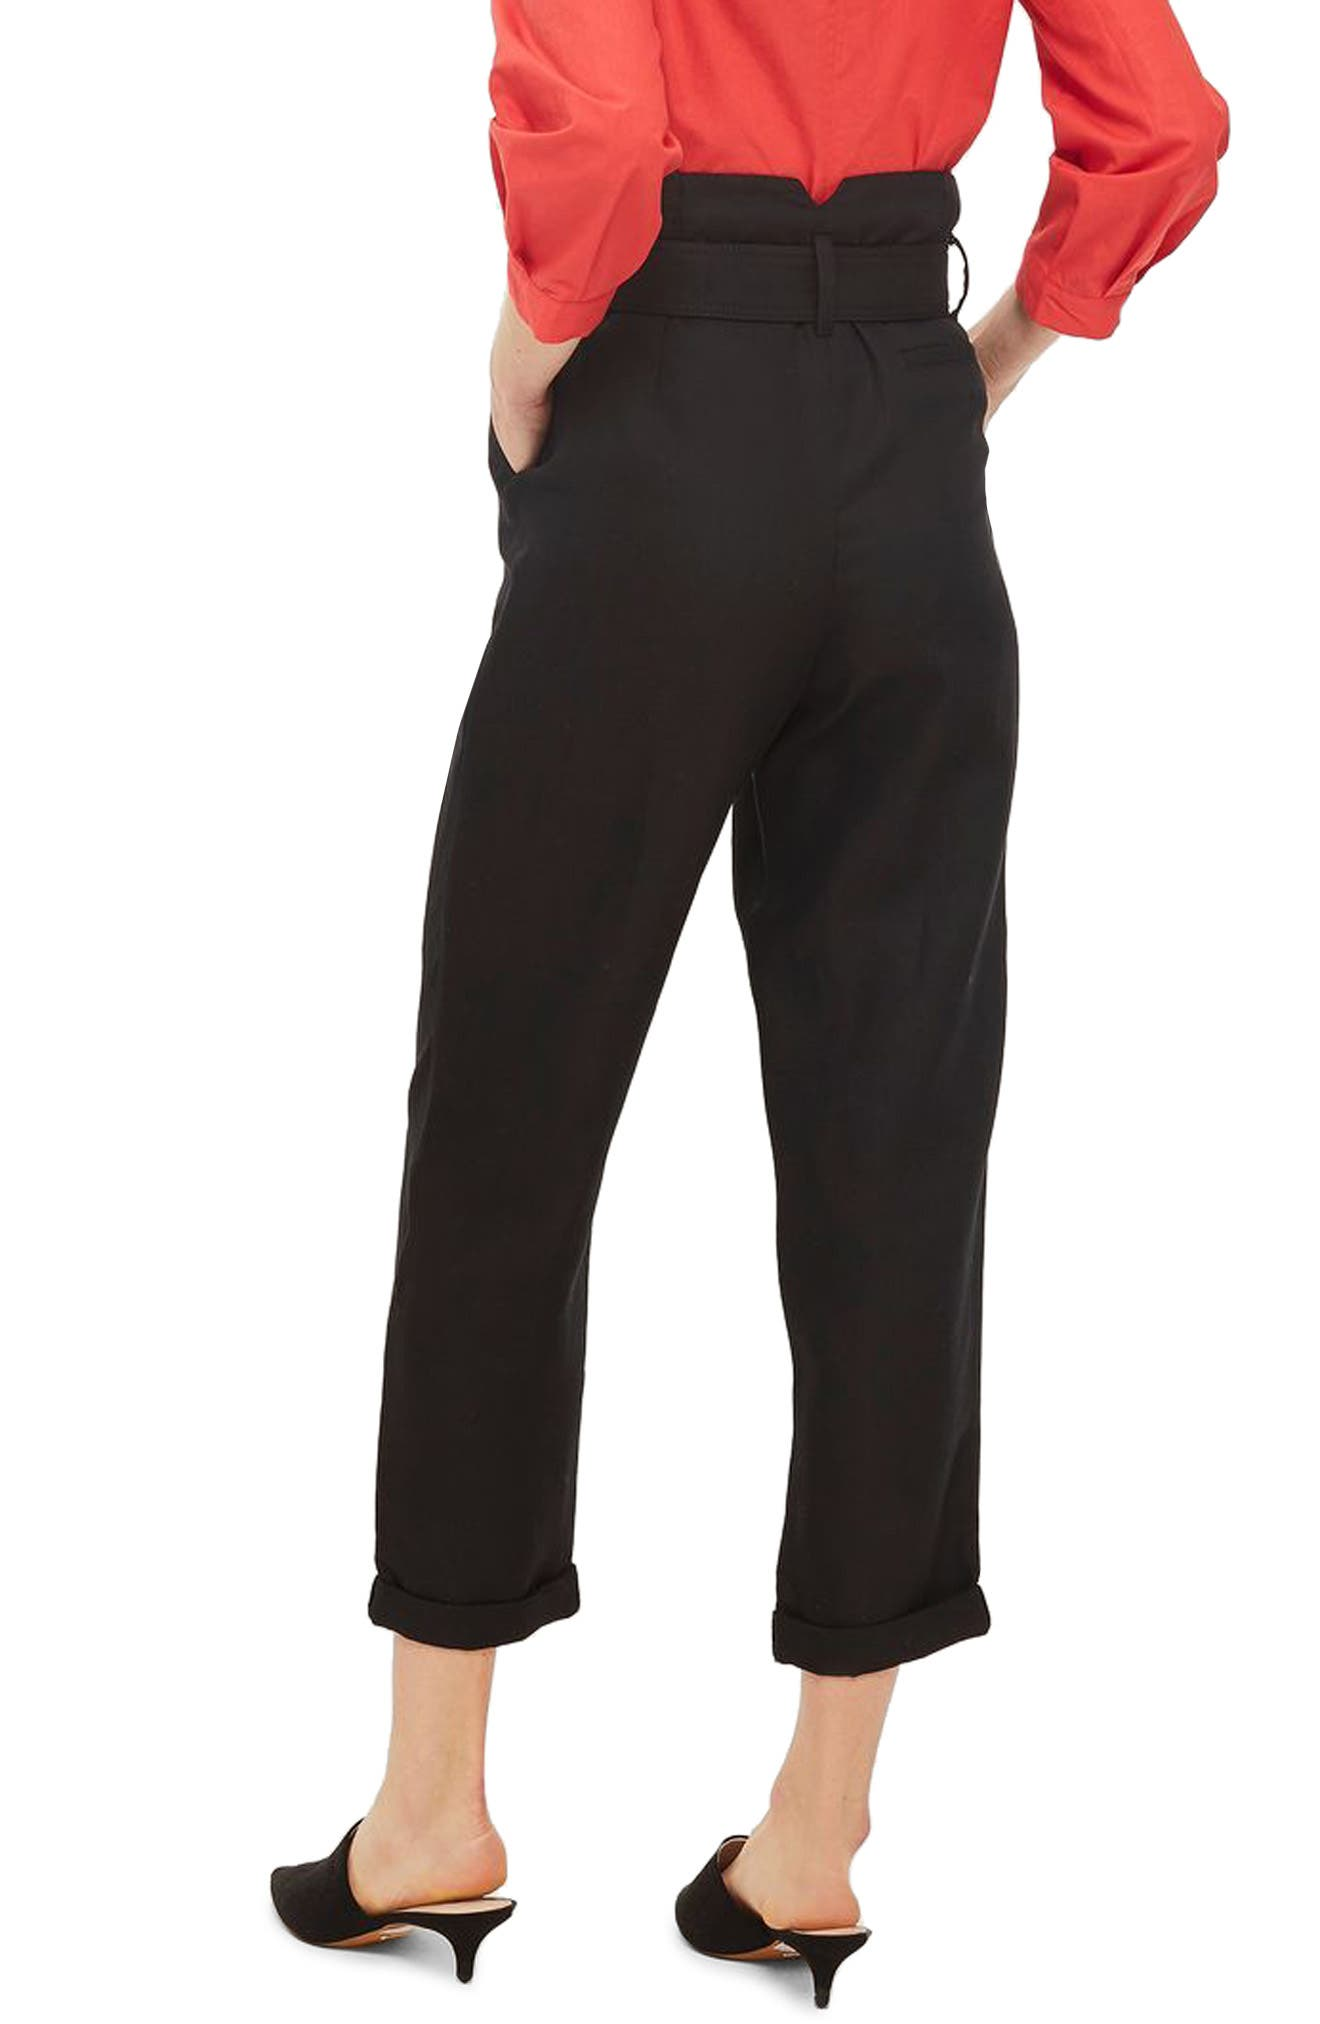 Mensy Belted Trousers,                             Alternate thumbnail 2, color,                             001